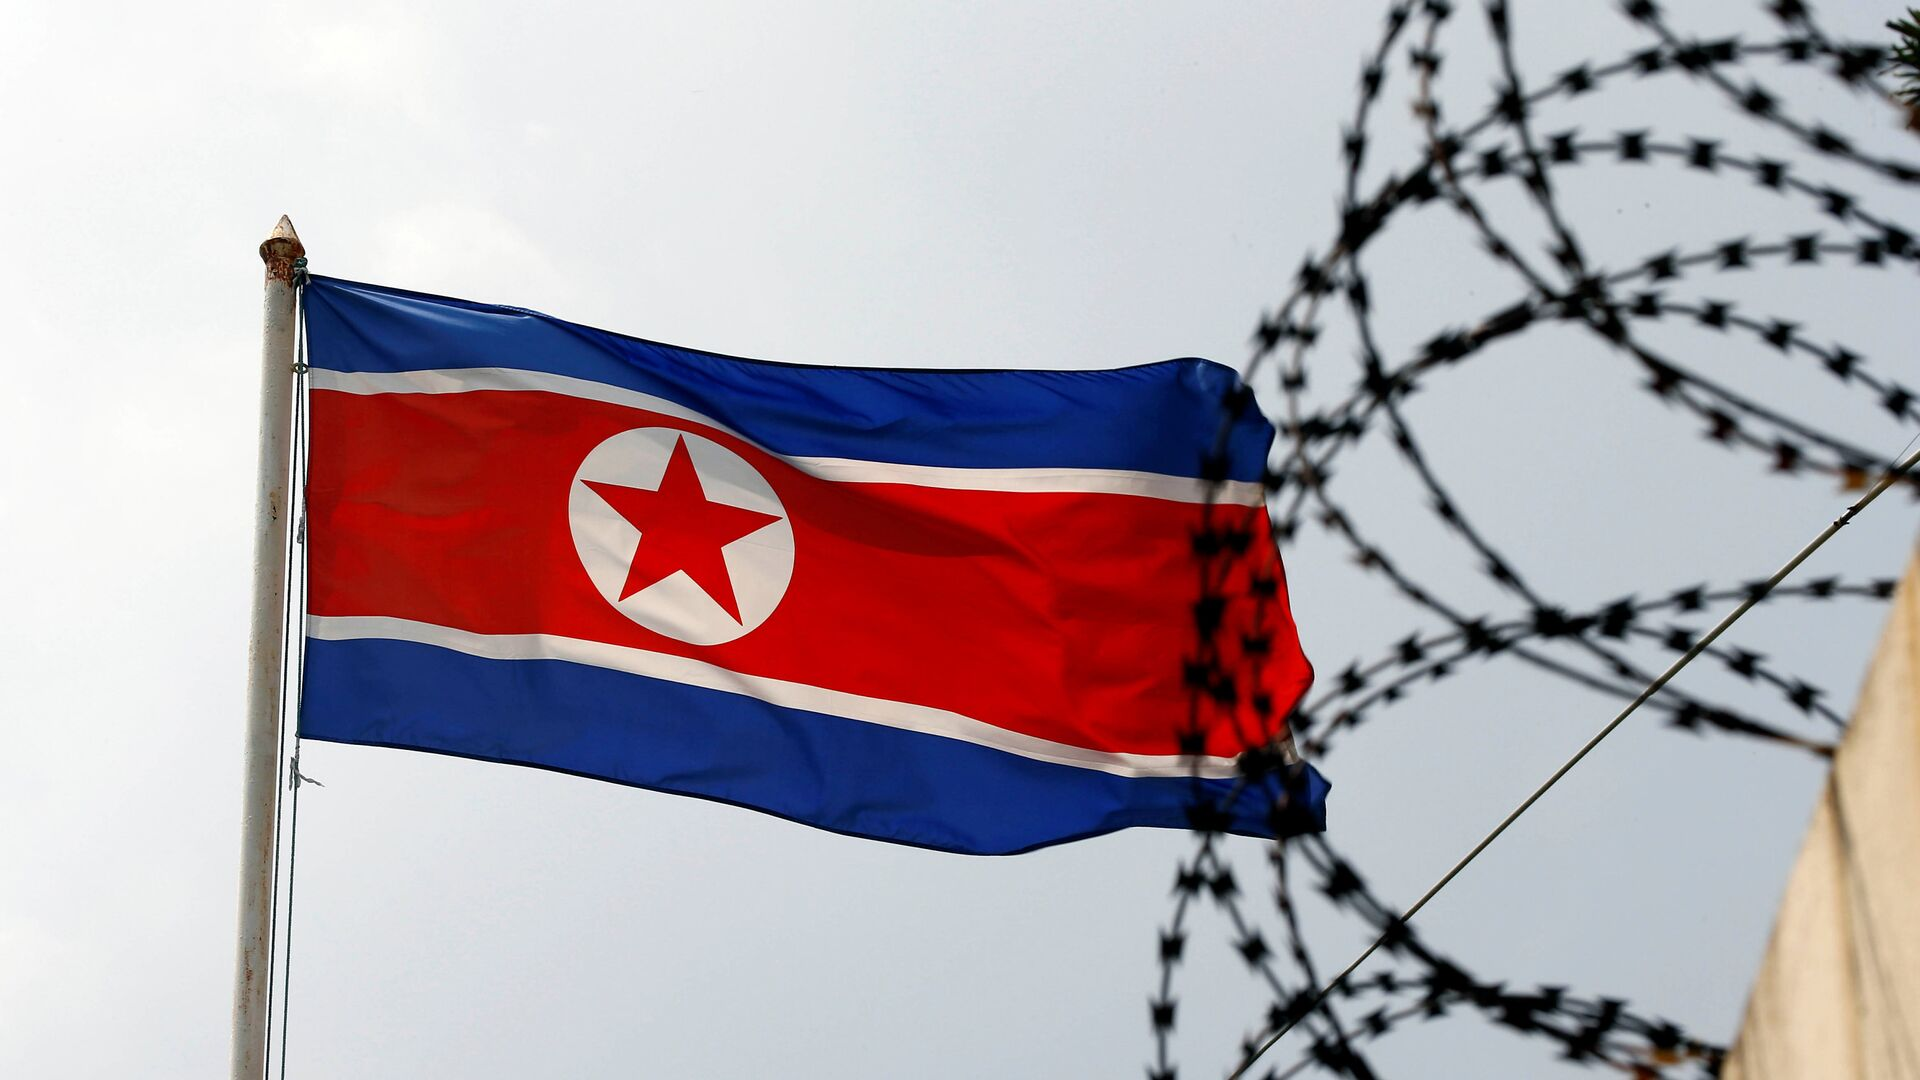 The North Korea flag flutters next to concertina wire at the North Korean embassy in Kuala Lumpur, Malaysia March 9, 2017 - Sputnik Mundo, 1920, 19.04.2021